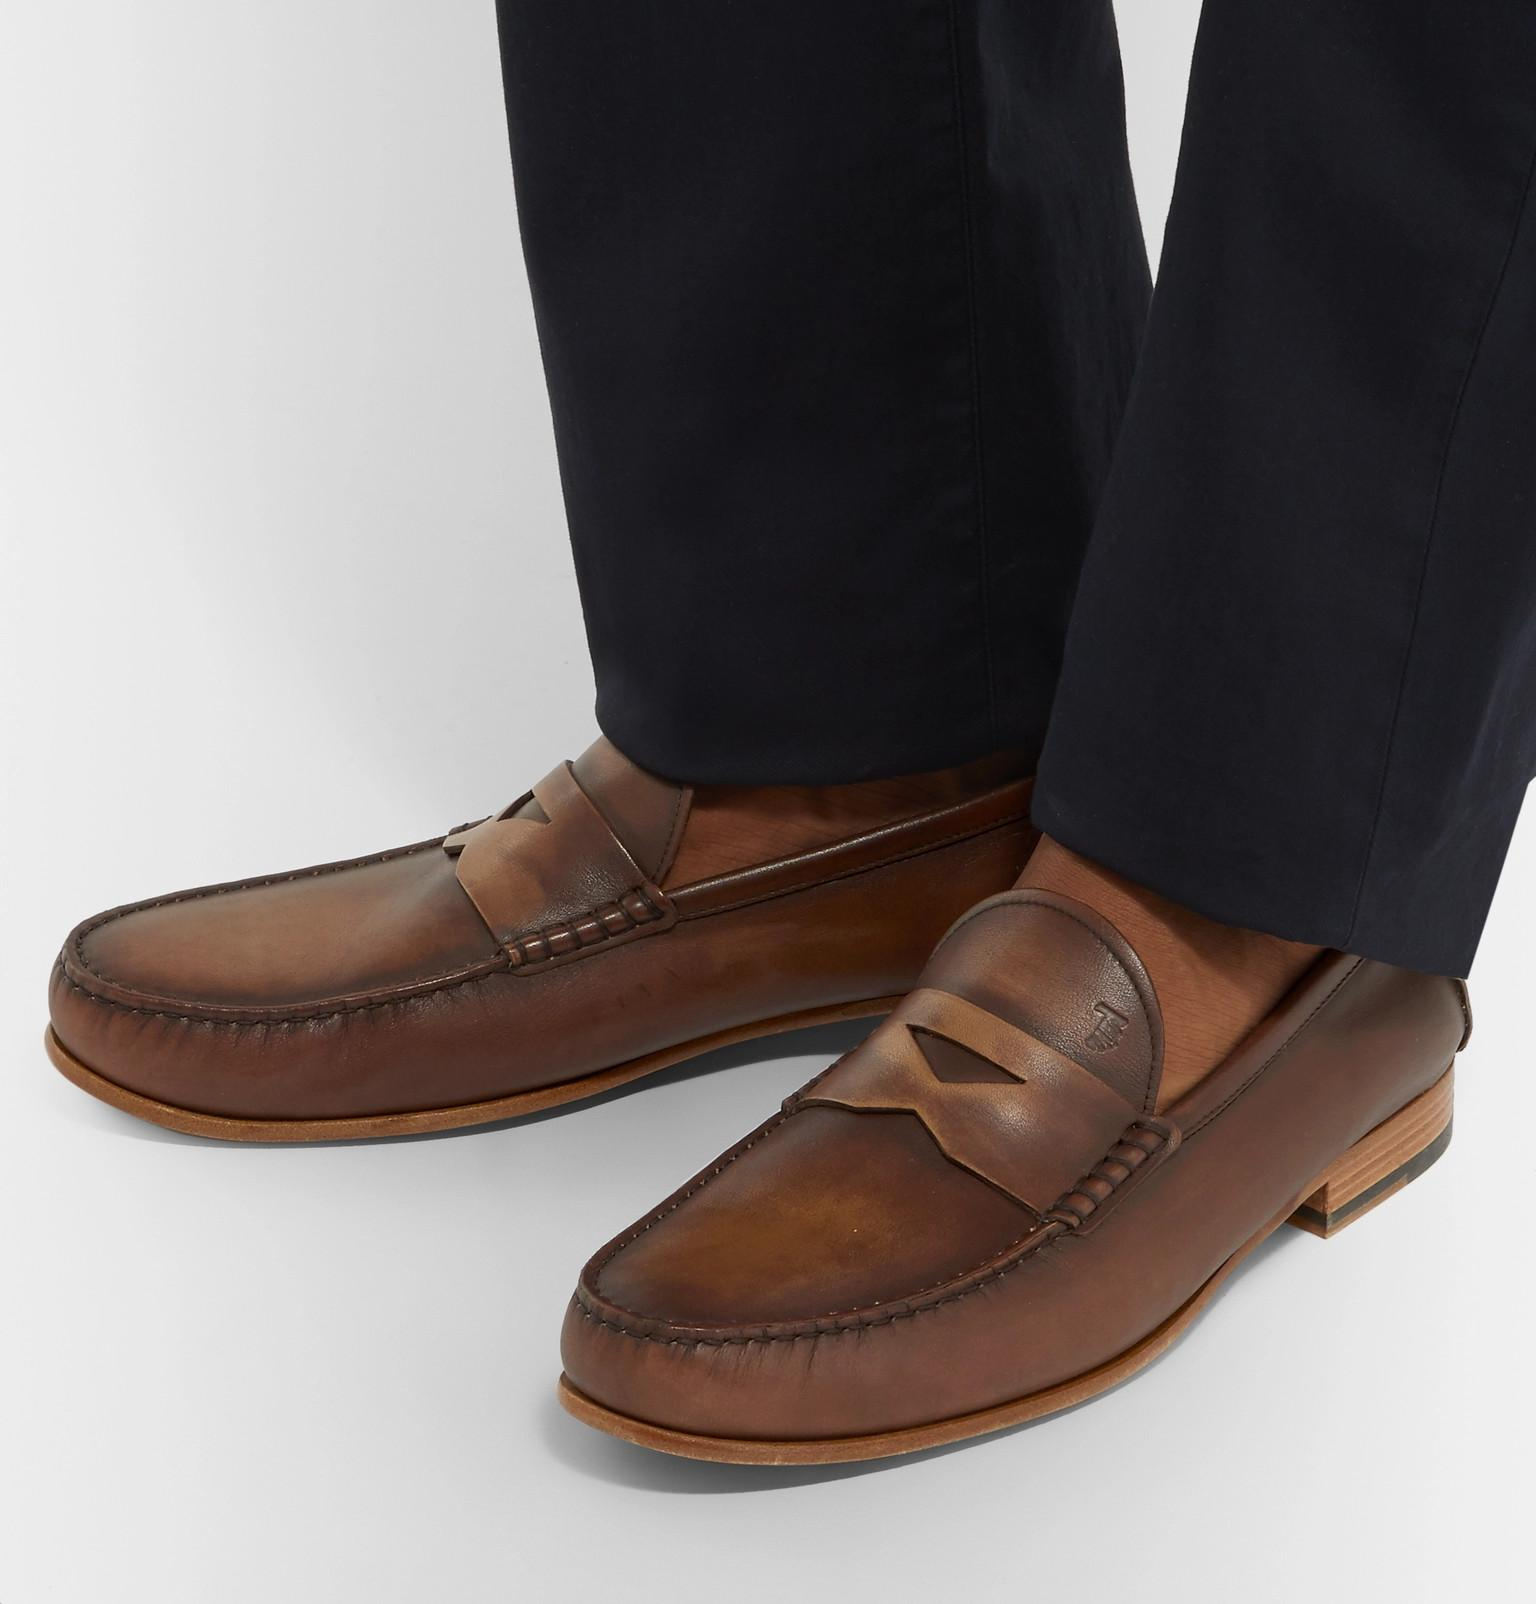 c41886f8e360 Lyst - Tod s Burnished-leather Penny Loafers in Brown for Men